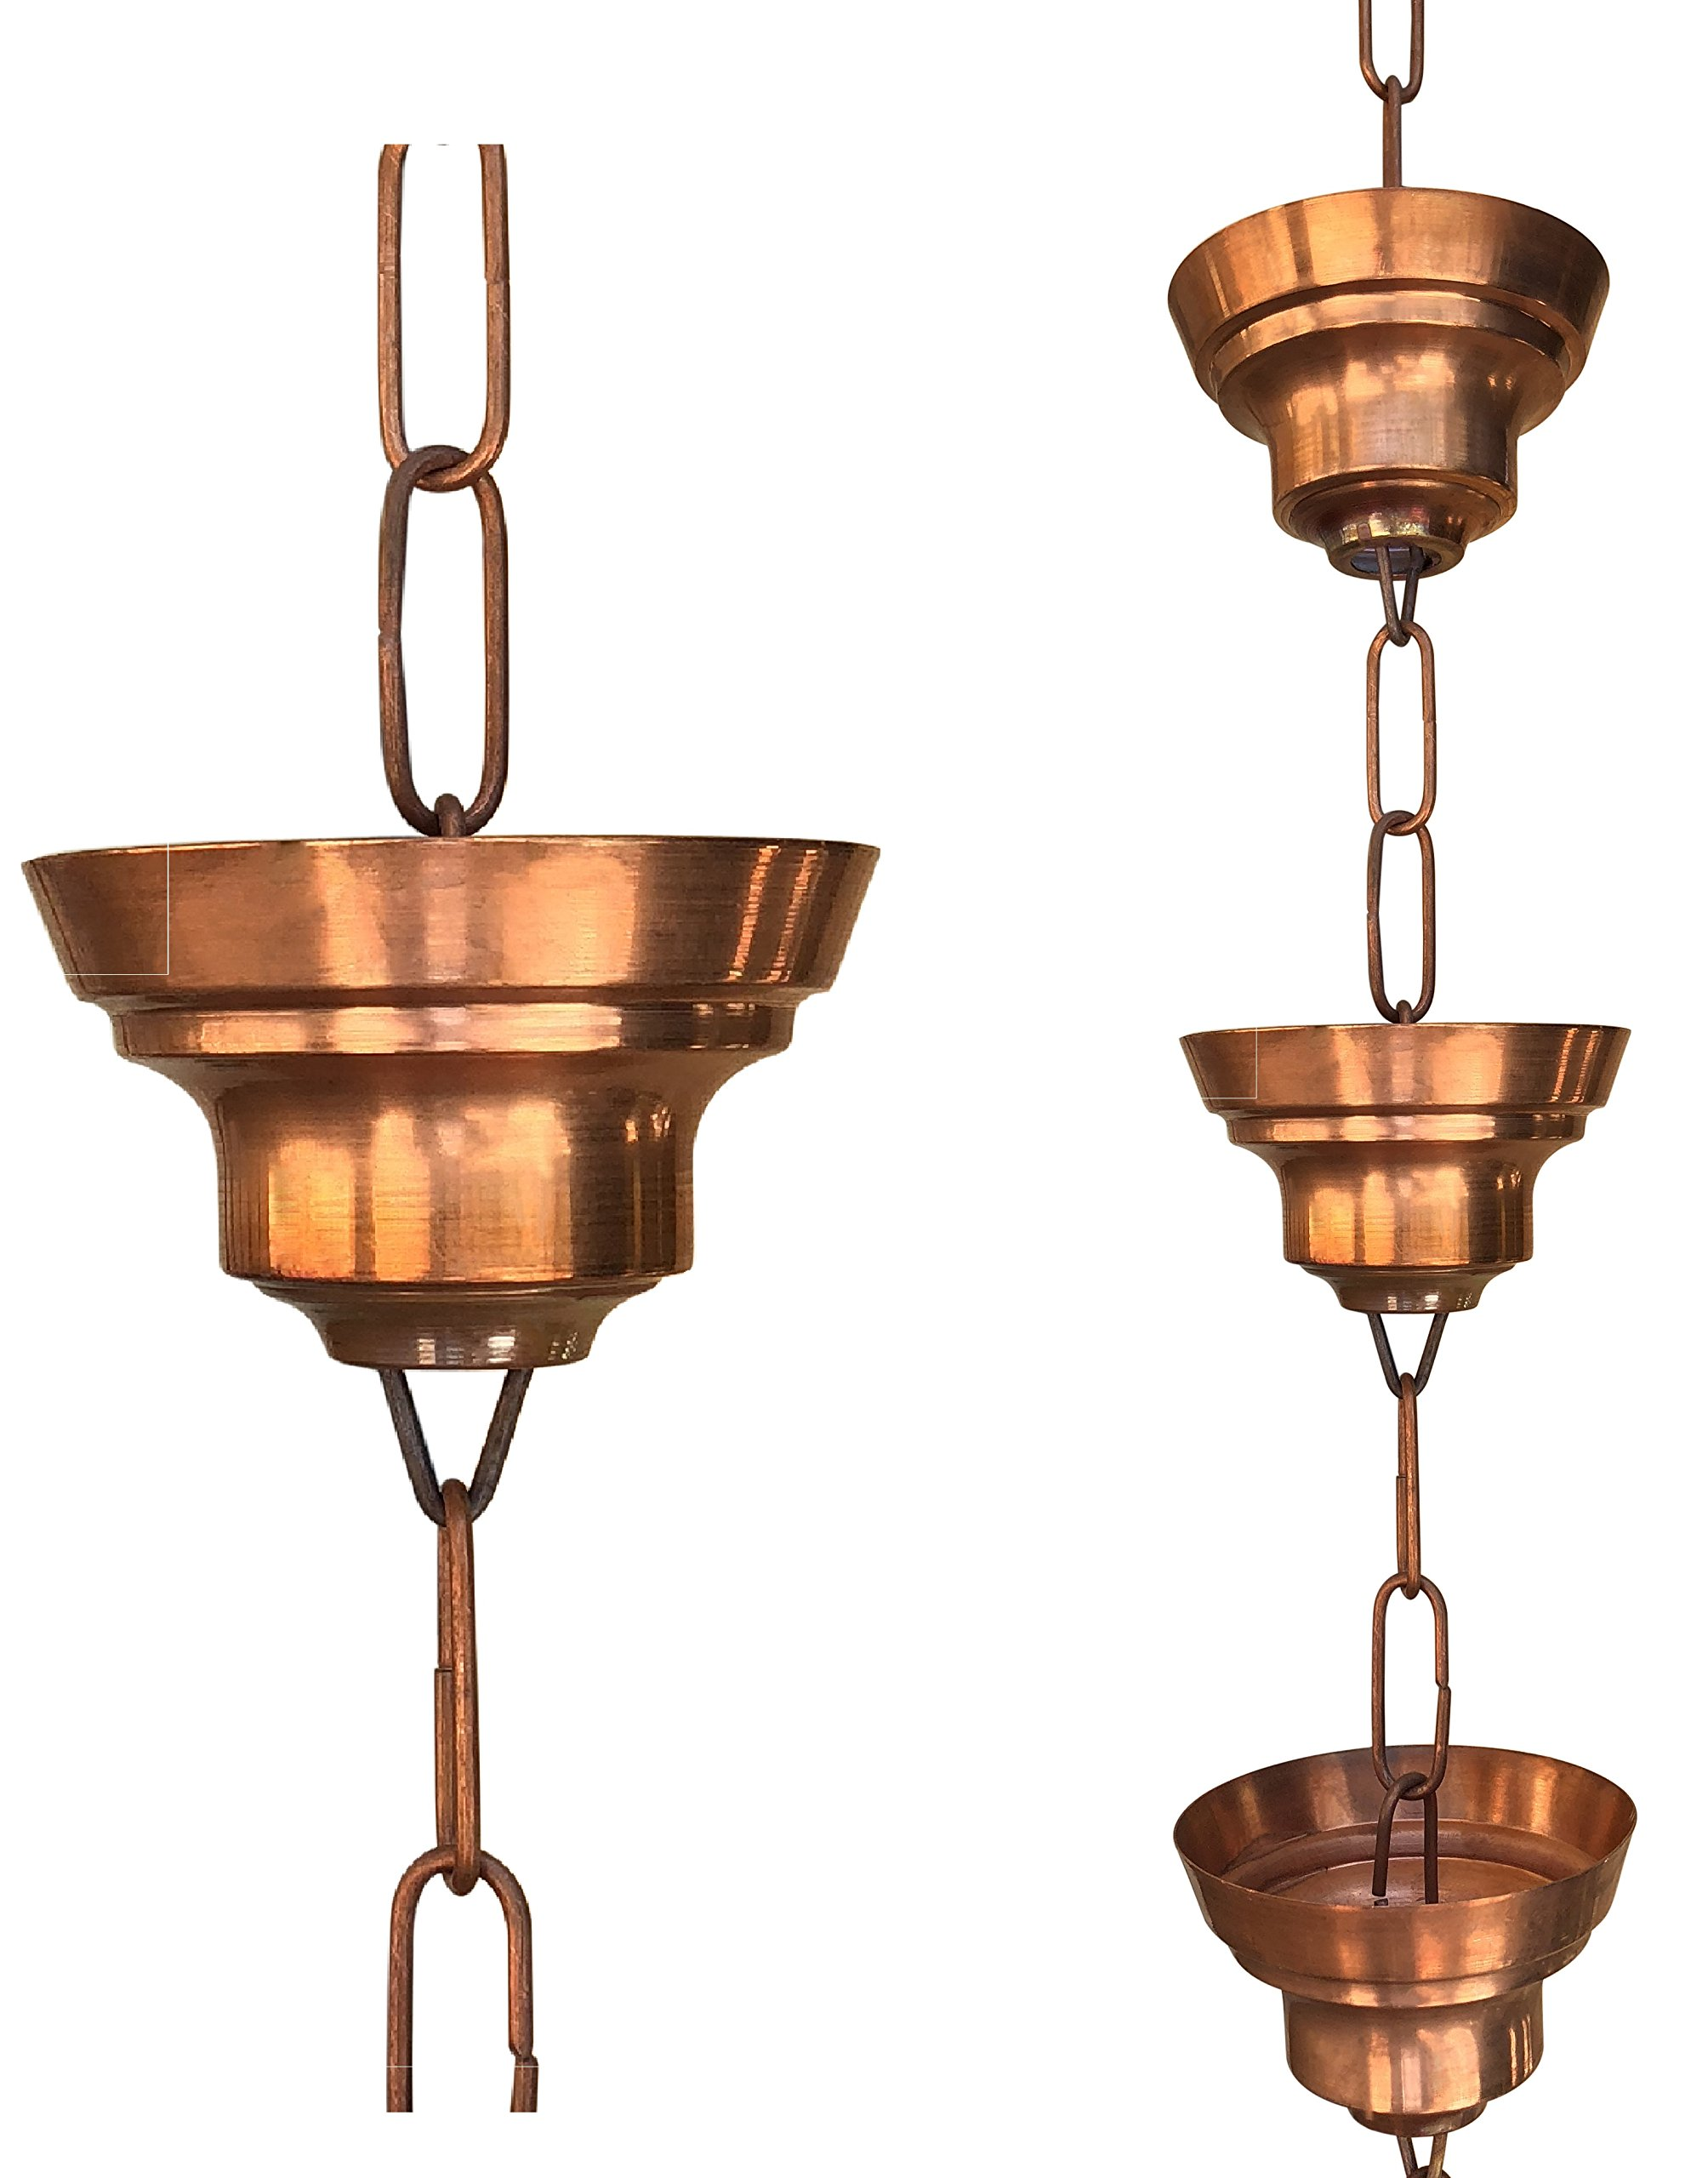 Monarch Pure Copper Tranquility Link Rain Chain, 8-1/2-Feet Length